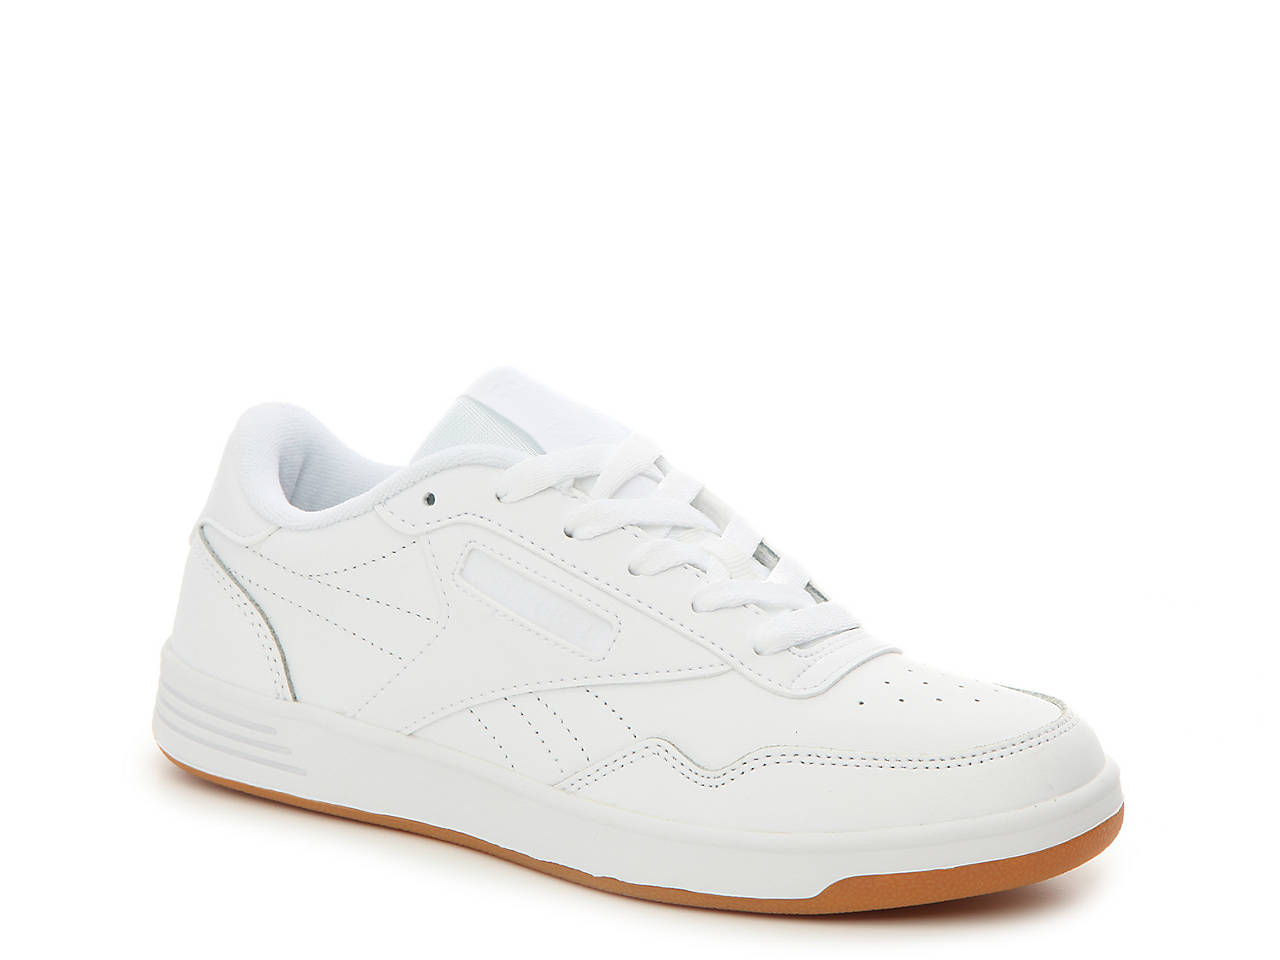 Reebok Club MEMT Sneaker Amazon Footaction Low Cost Cheap Price Countdown Package Online Marketable For Sale Outlet Lowest Price EoUtTuqw